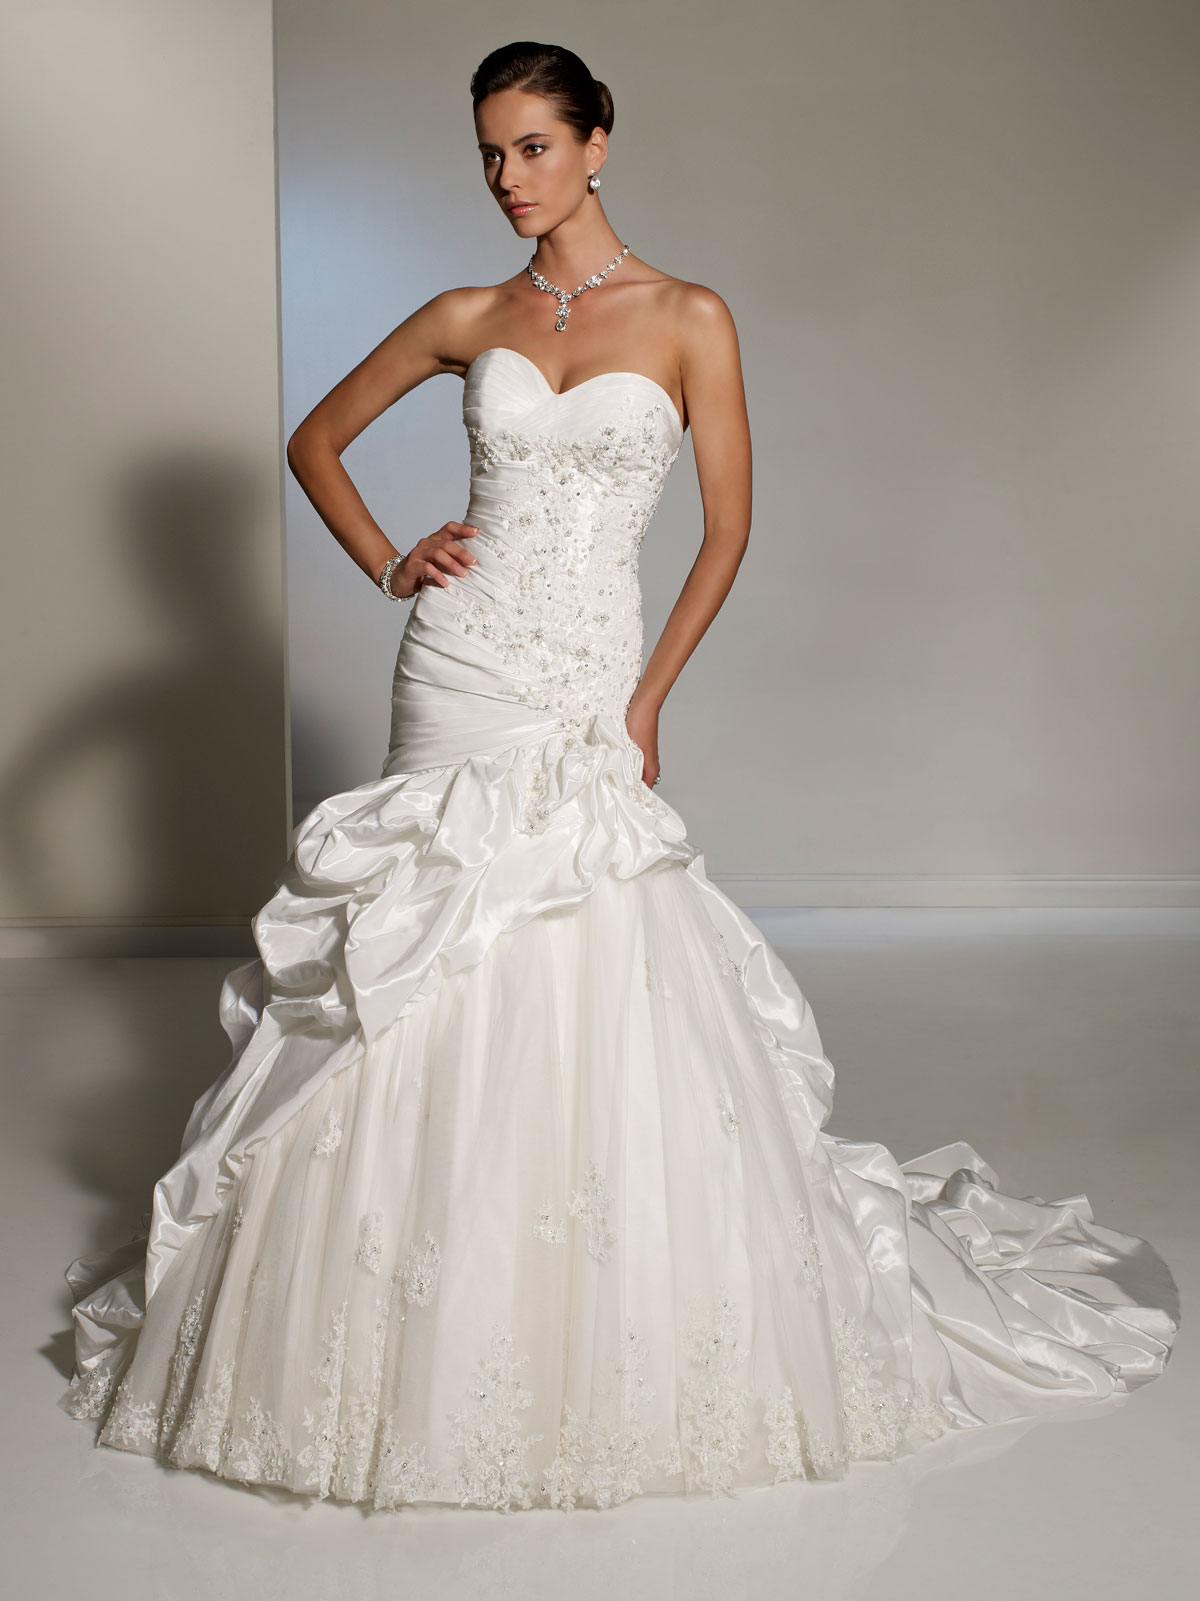 Fitted wedding dresses with pick up skirt and cascading pick up train